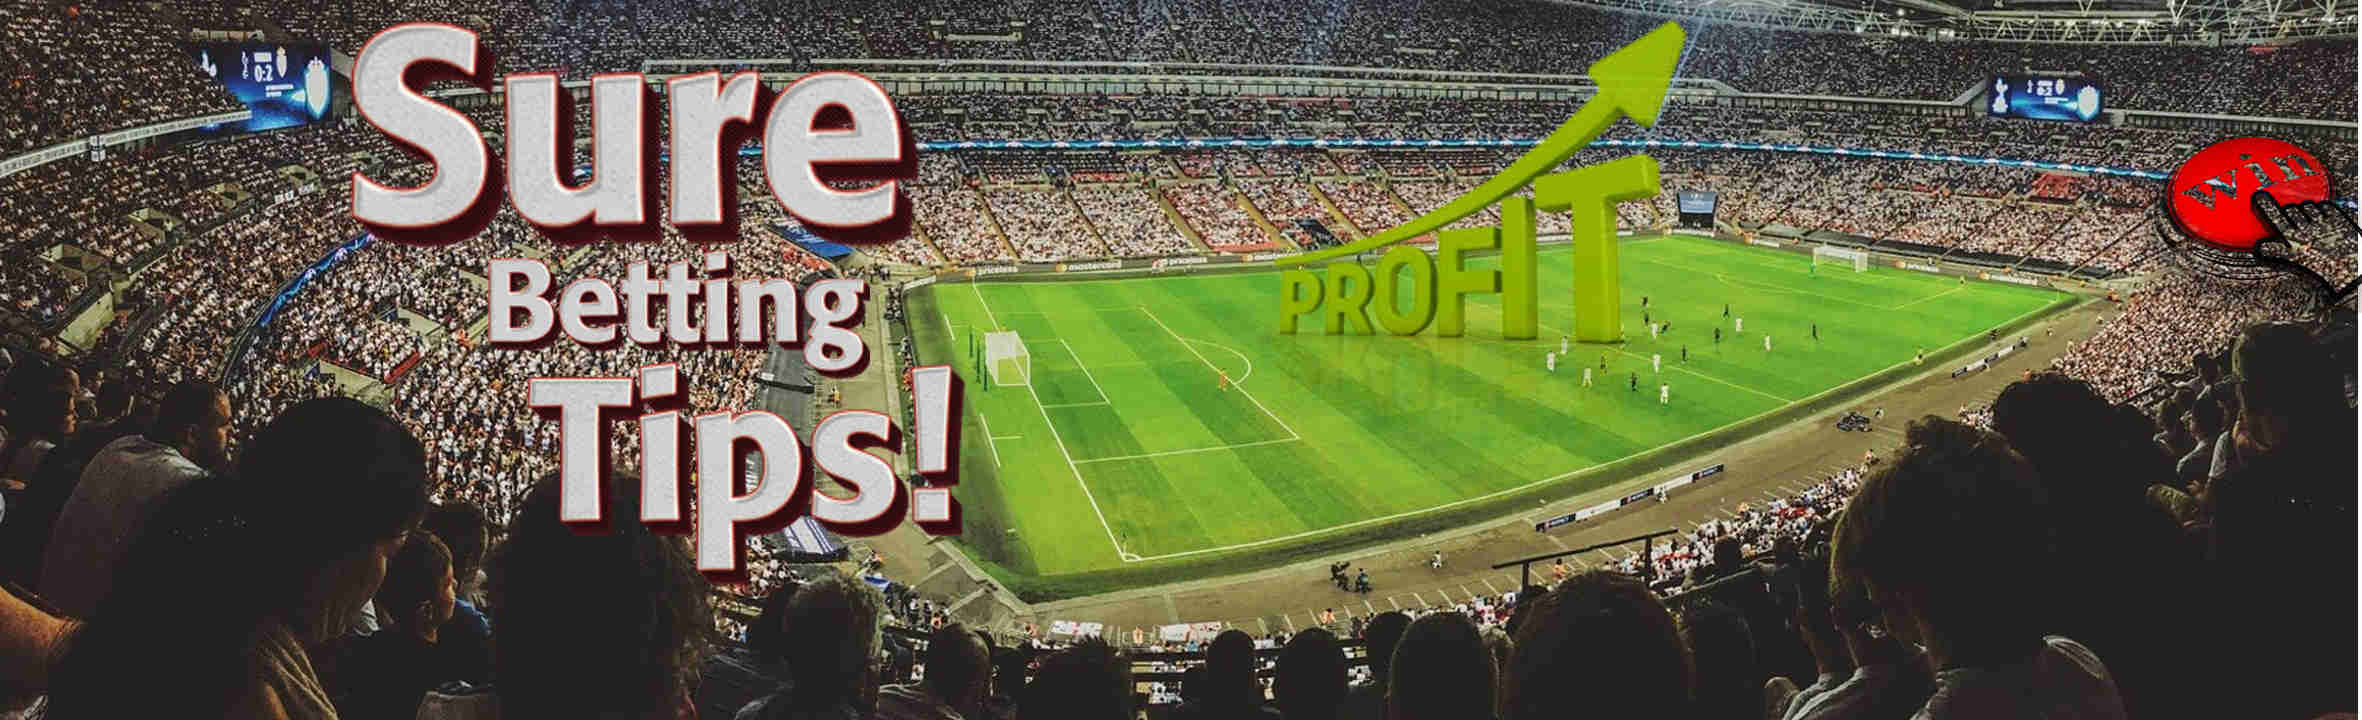 Sokasmart | Free Sure sports betting predictions and tips